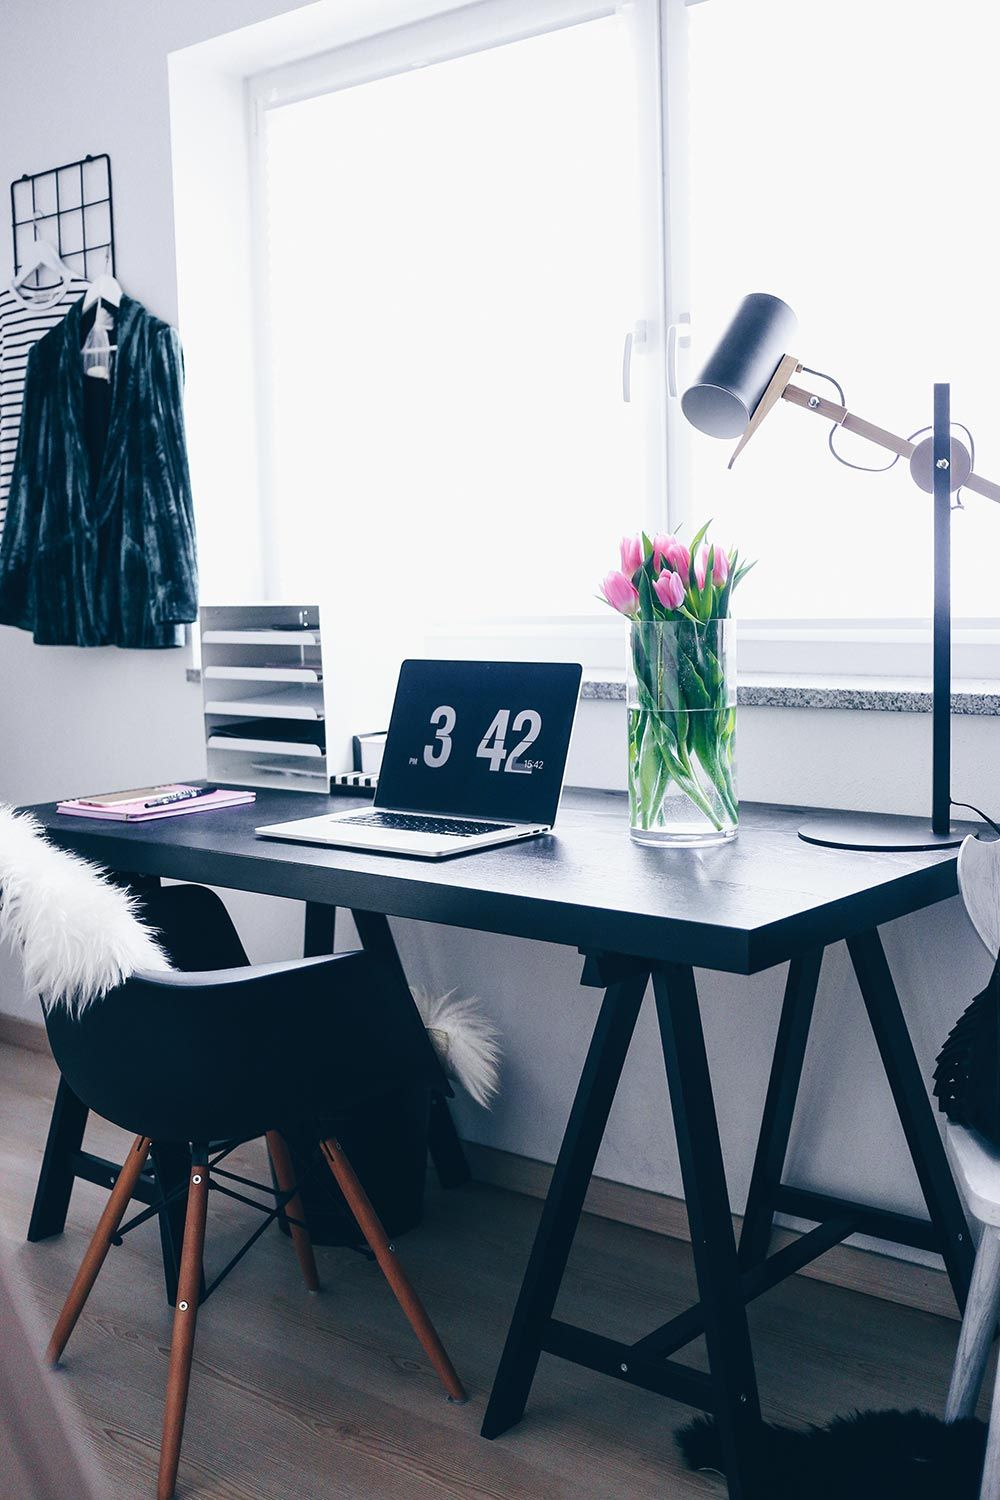 Mein Blogger Home Office: Stylisch, aber funktional | Pinterest ...